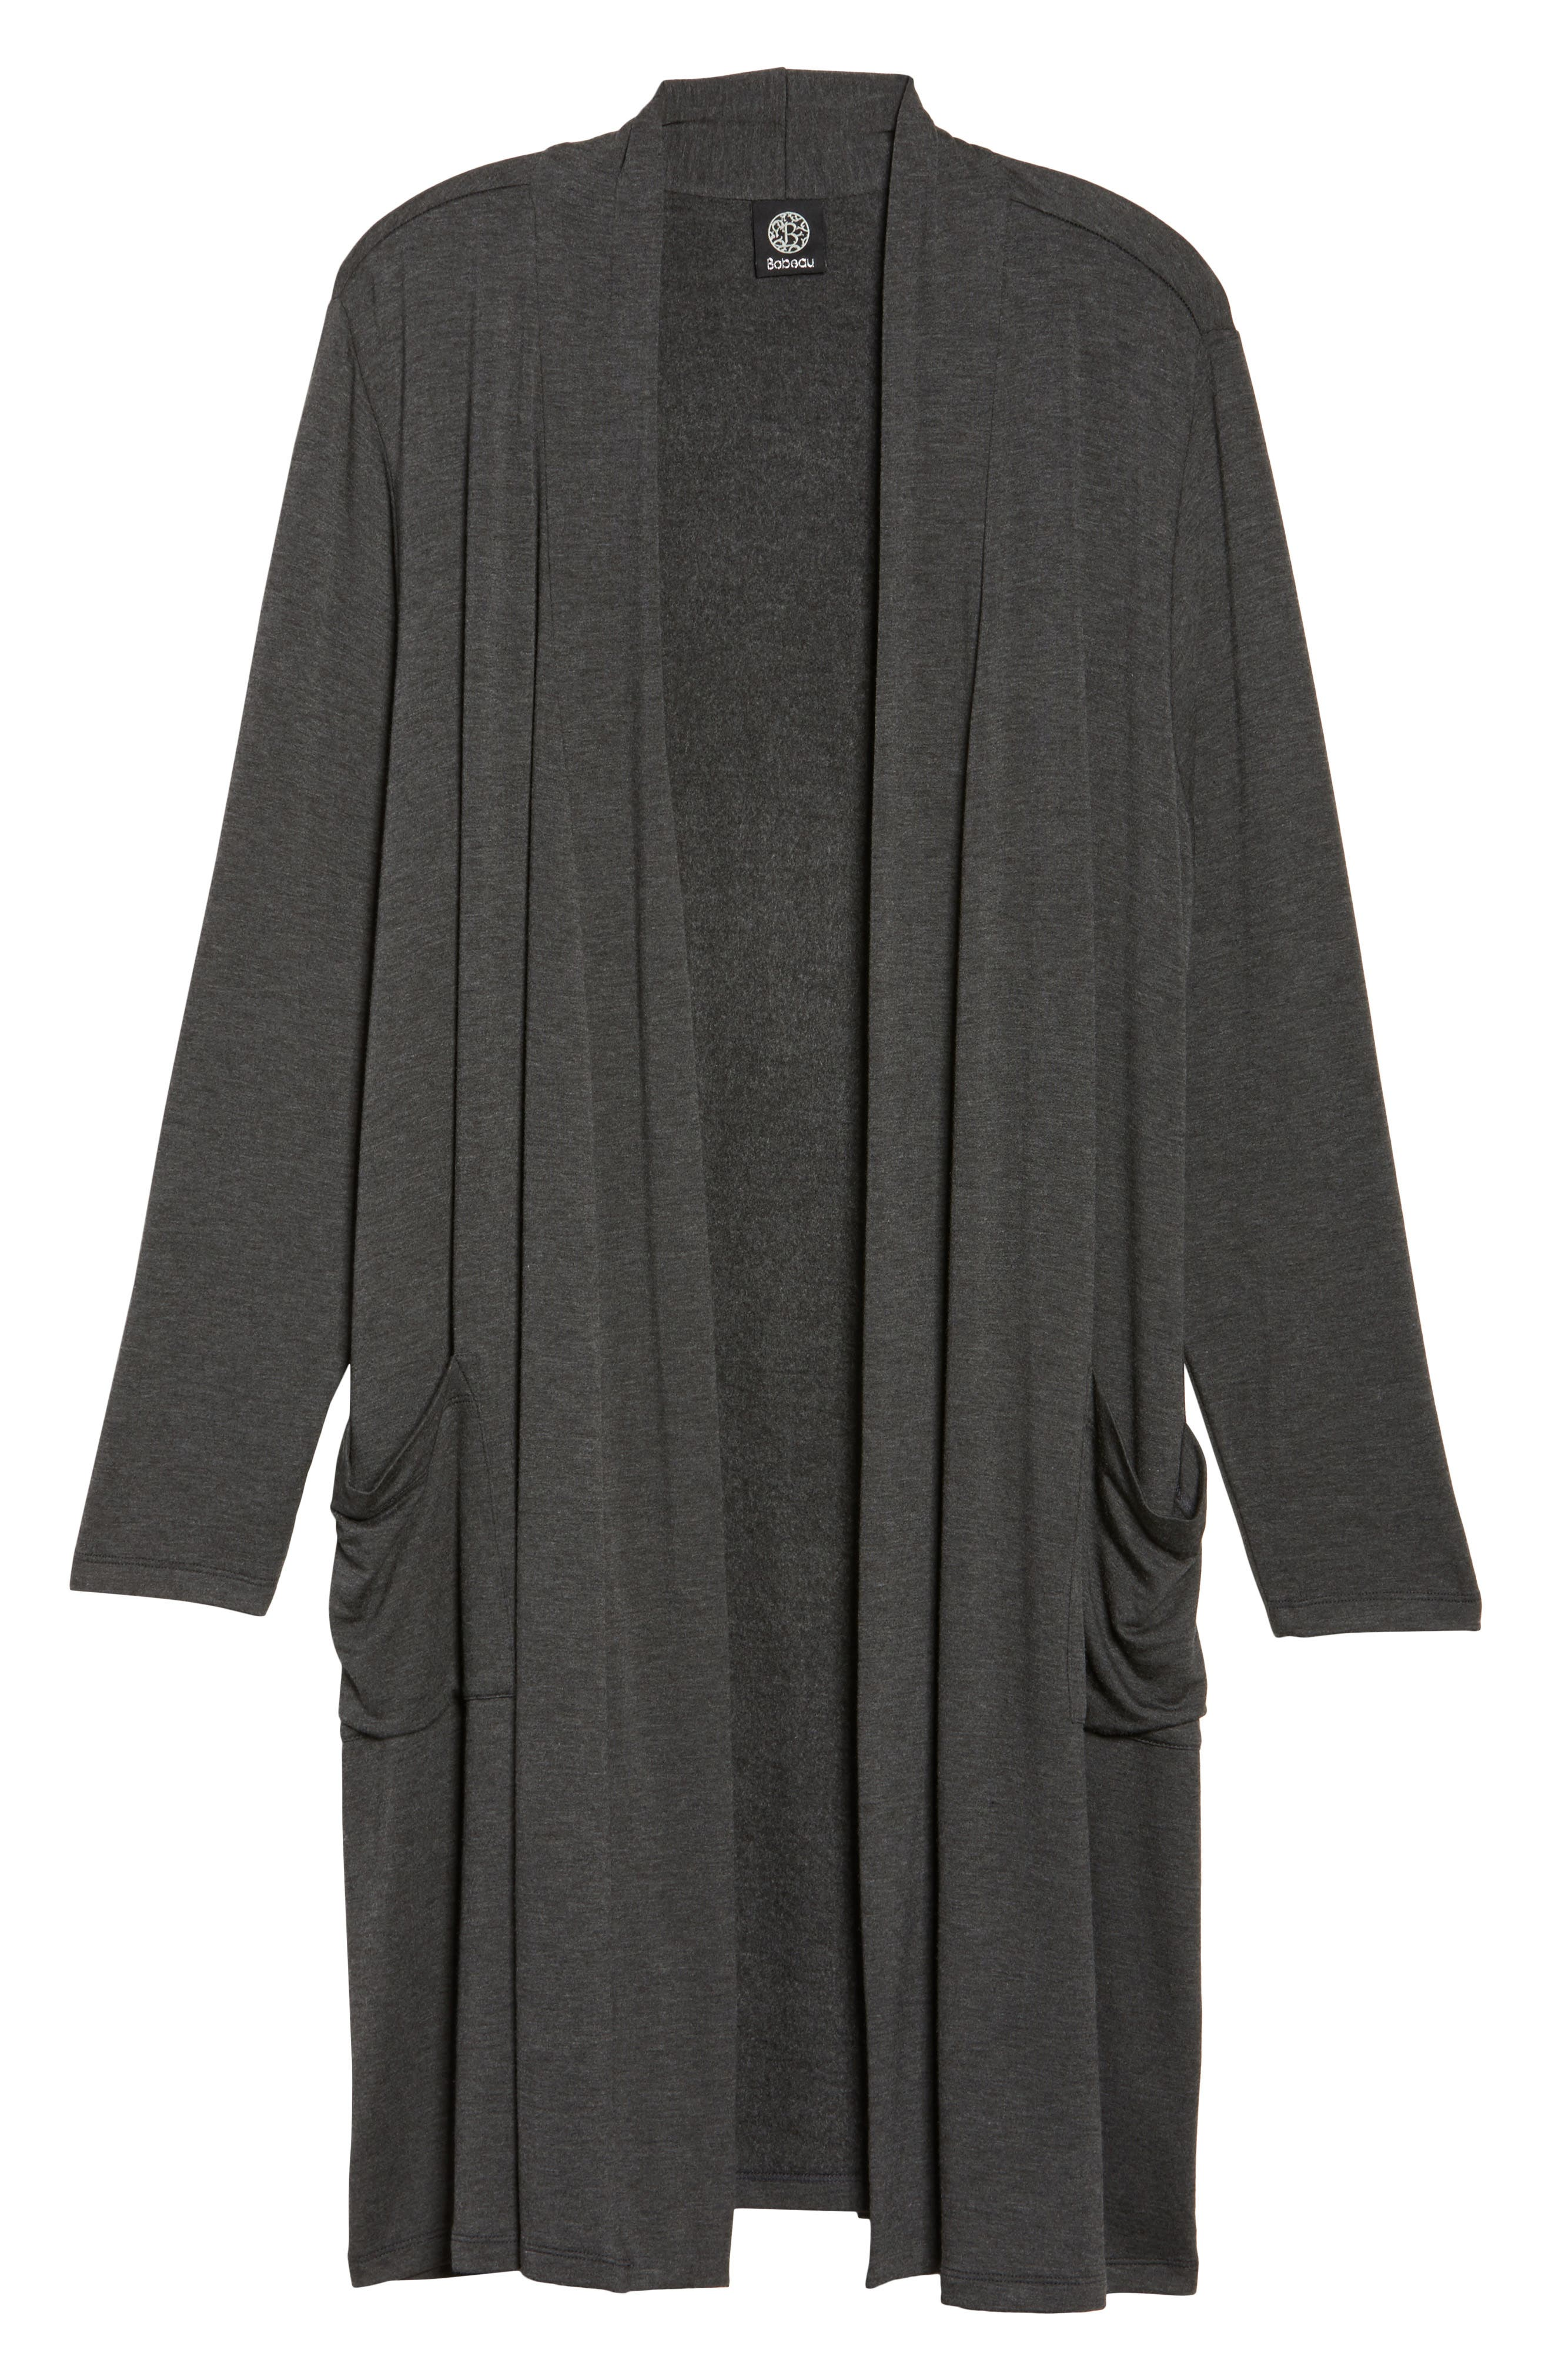 Two-Pocket Stretch Cardigan,                             Alternate thumbnail 6, color,                             Heather Charcoal